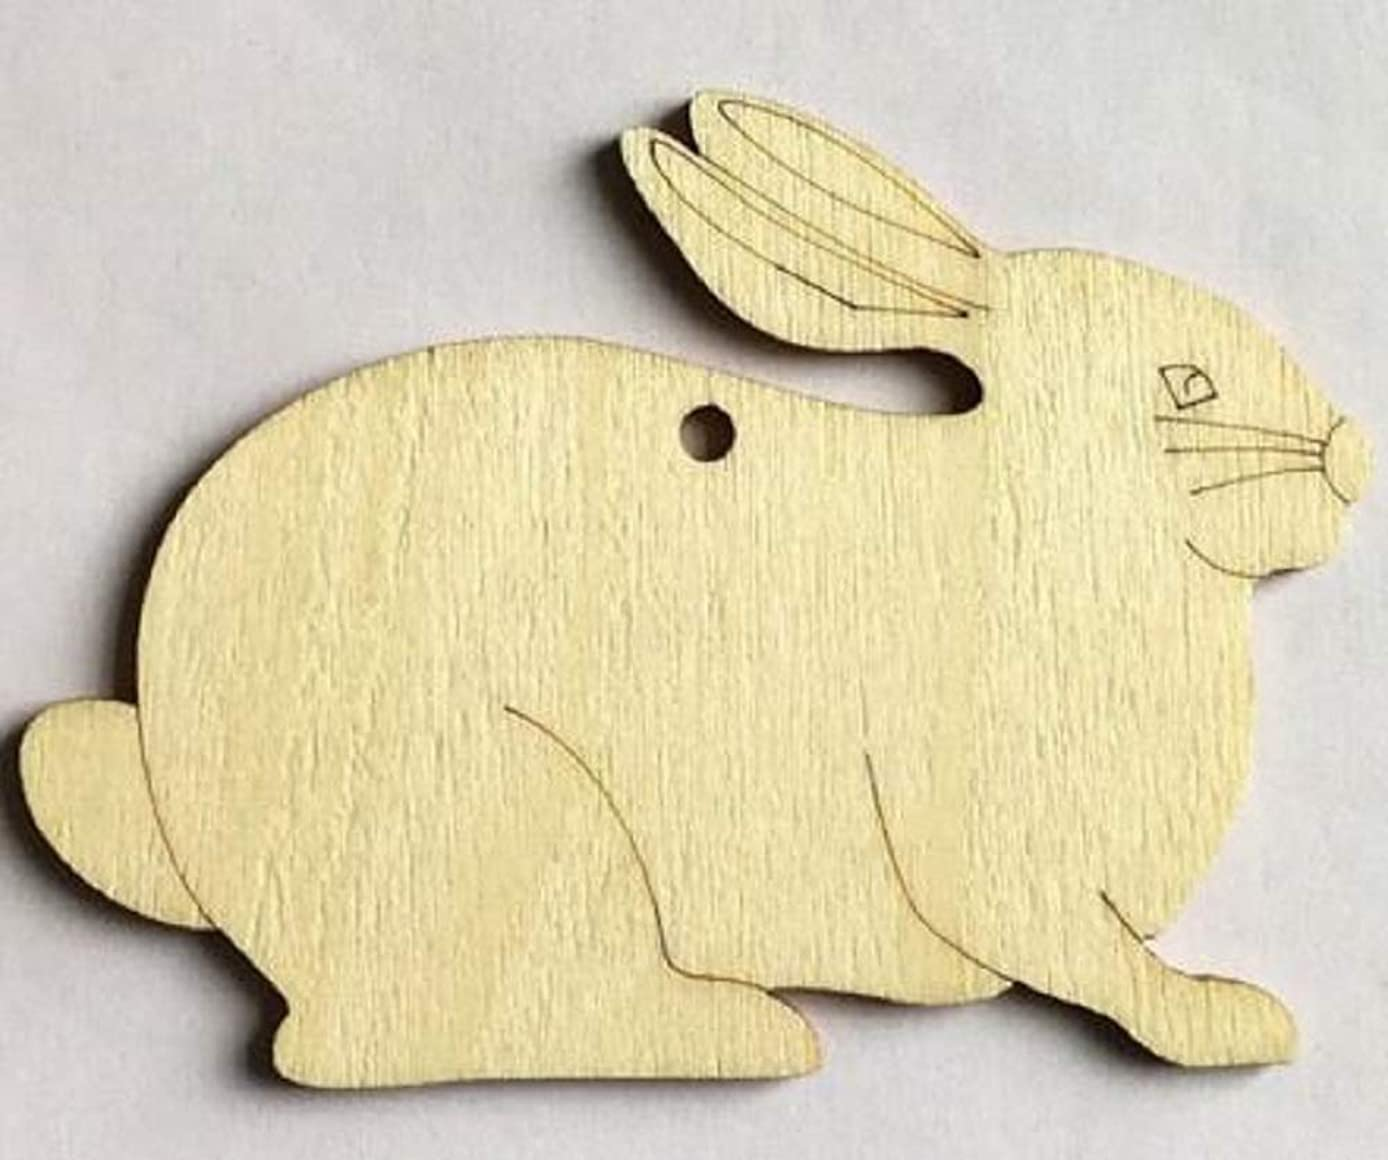 10 pcs Rabbit Shaped Natural Unfinished Wooden Cutouts DIY for Craft Projects, Decorations, Birthdays, Weddings, Gift Tags, Craft Tree Ornaments, Scrapbooking and much more by My Purple Giraffe